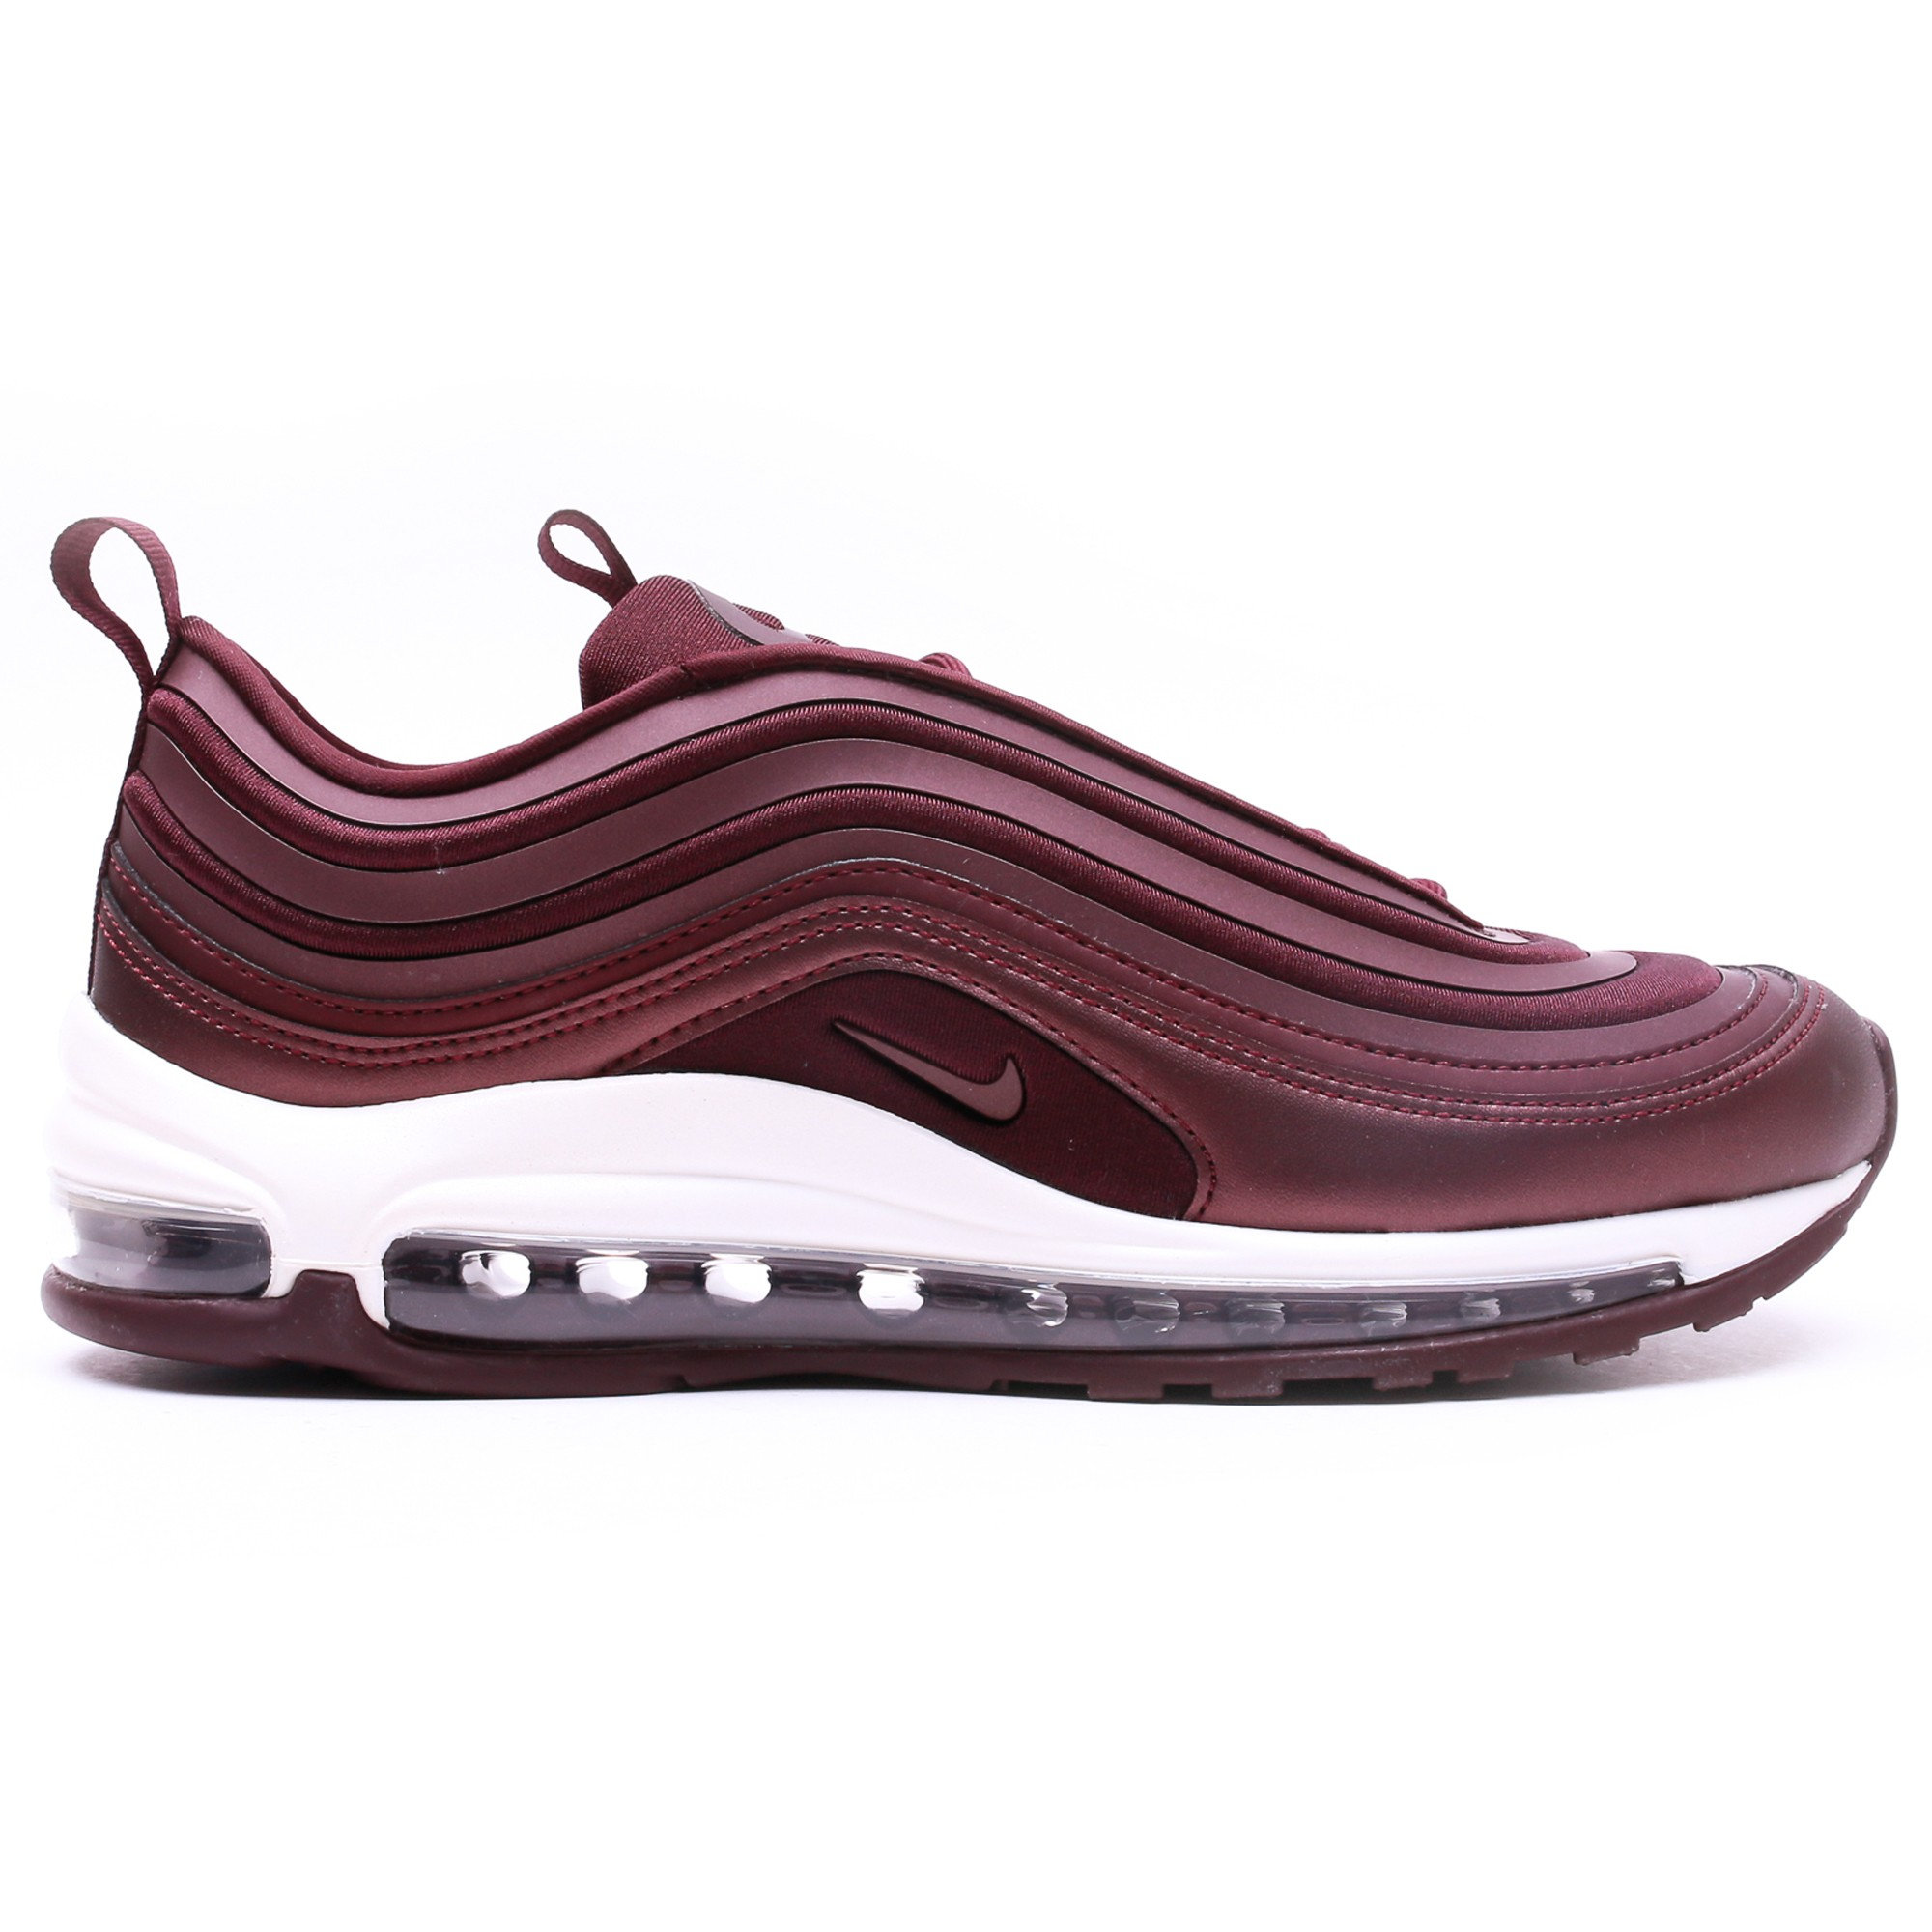 Cheap Nike Air Max 97 OG (2016) MERCI Cheap Nike !!!